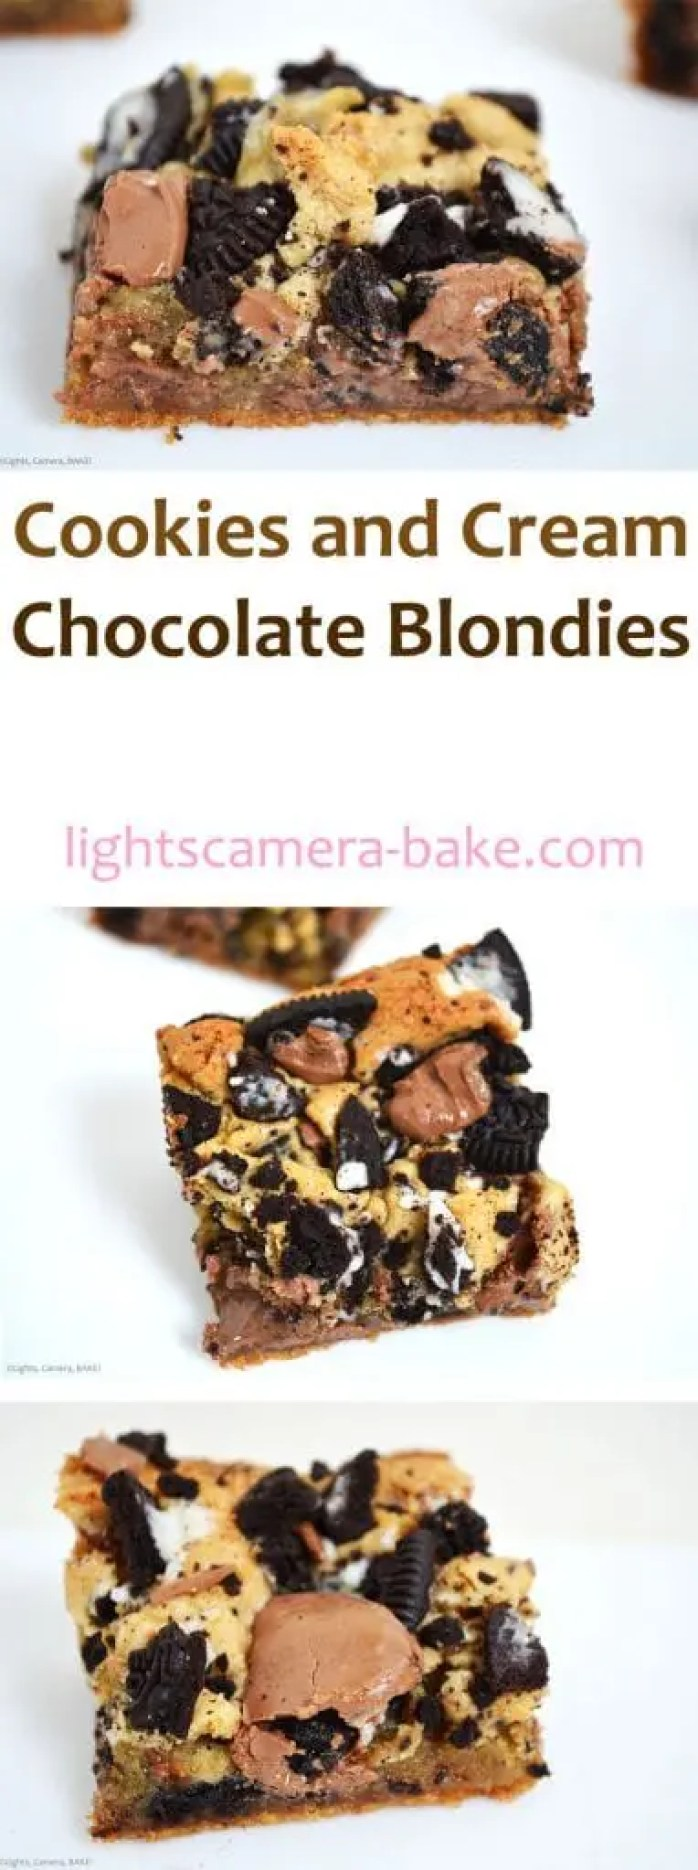 Cookies and Cream Chocolate Blondies are for the cookies and cream lovers out there! These blondies are ooey gooey, and filled to the brim with melty cookies and cream chocolate and crushed Oreos. If you love Oreos, ooey gooey treats and chocolate, these blondies are a must bake!